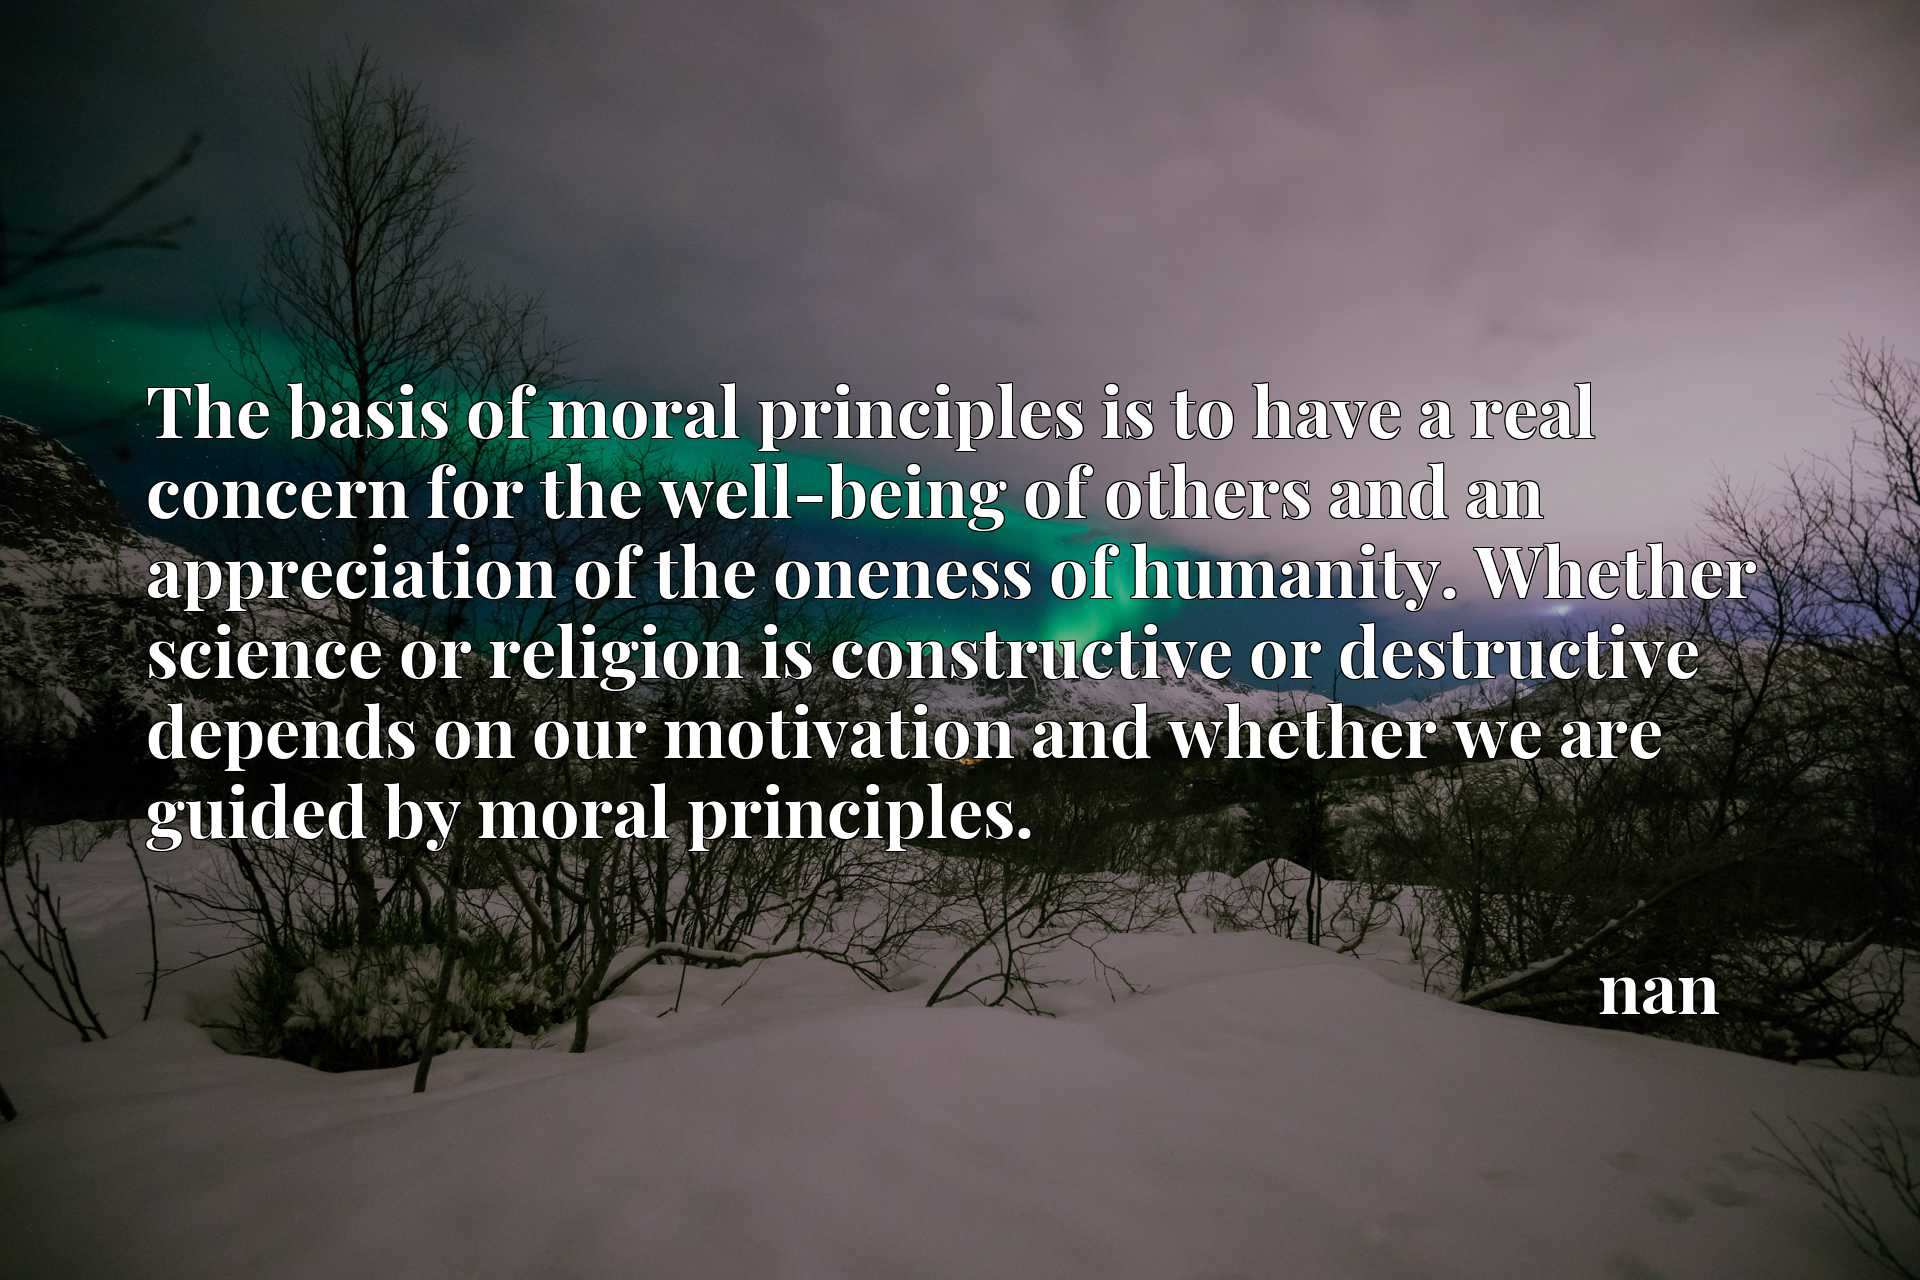 The basis of moral principles is to have a real concern for the well-being of others and an appreciation of the oneness of humanity. Whether science or religion is constructive or destructive depends on our motivation and whether we are guided by moral principles.